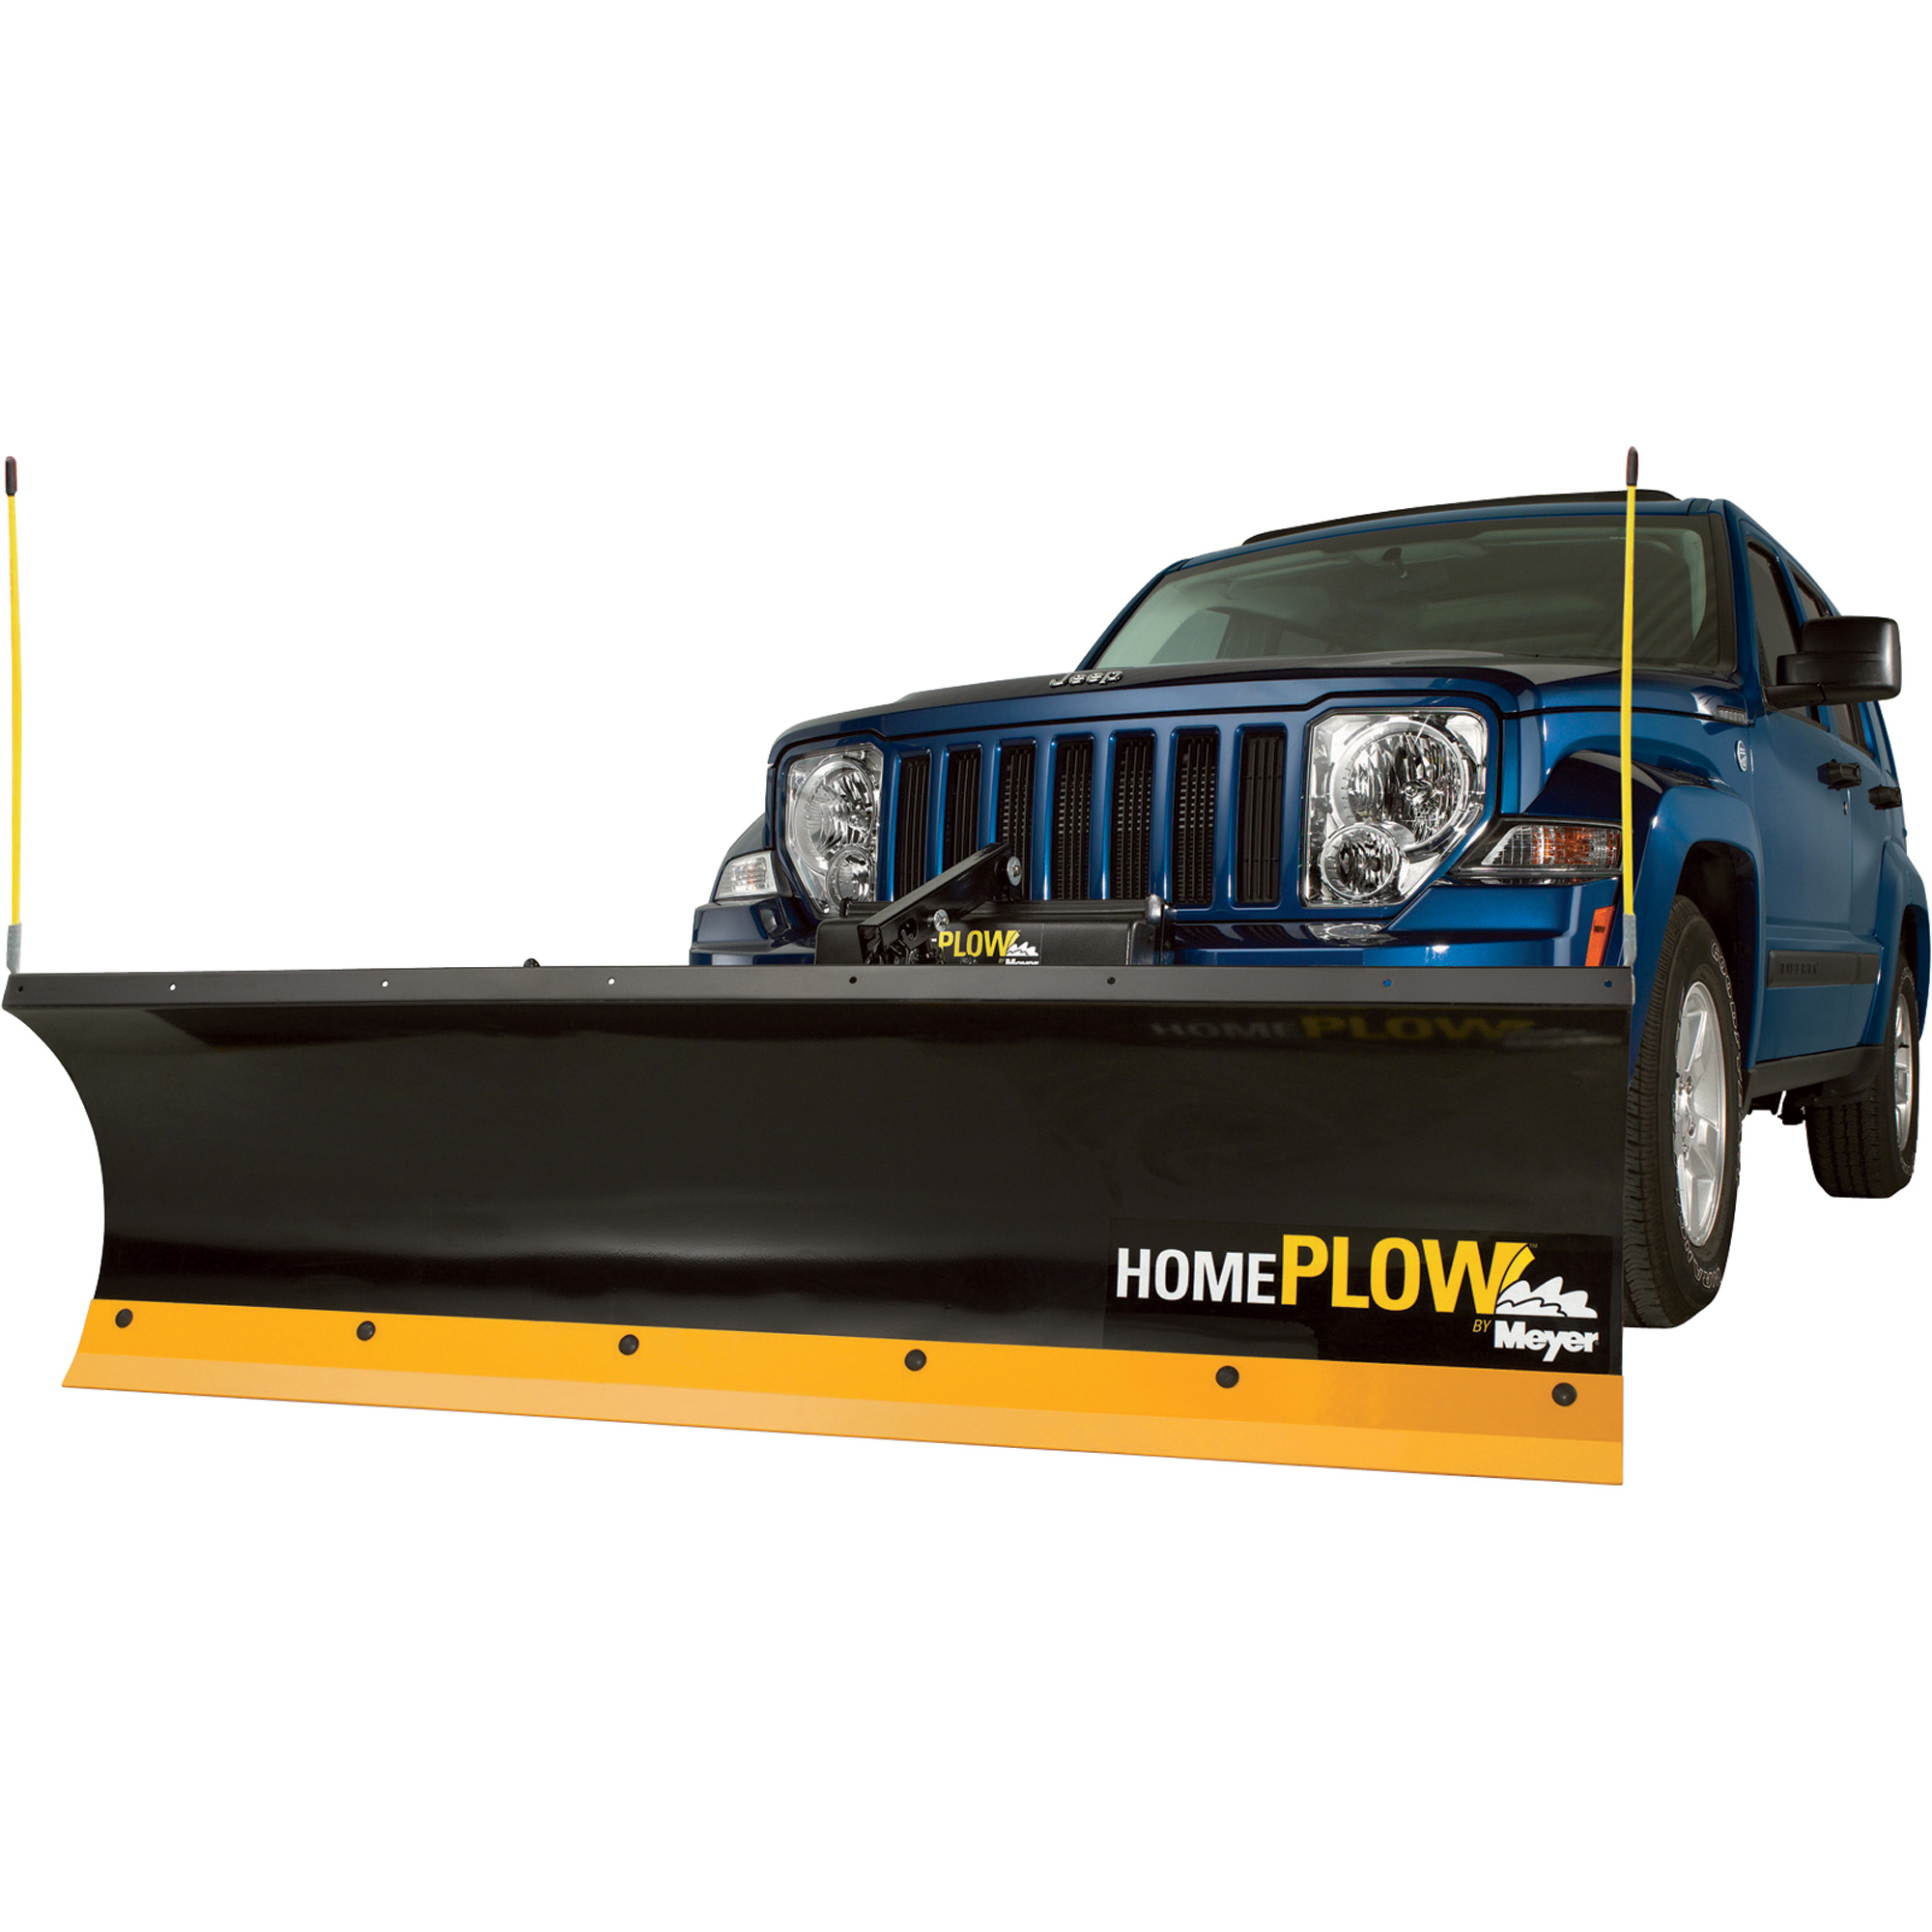 home plow by meyer snowplow auto angling 80in model autos post. Black Bedroom Furniture Sets. Home Design Ideas